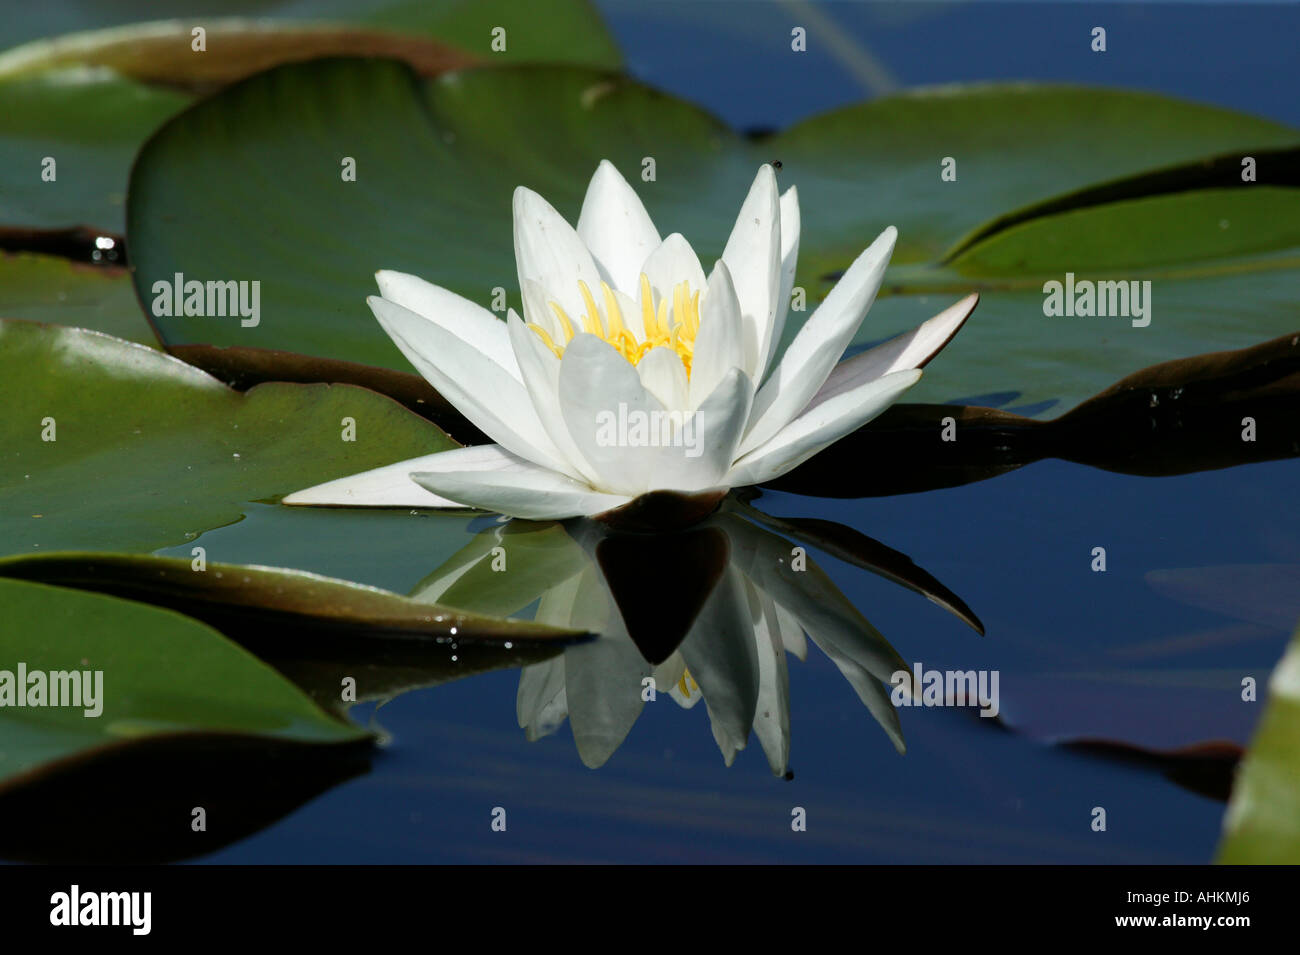 European white water lily, Nymphaea alba, in the lake Vansjø in Østfold, Norway. - Stock Image